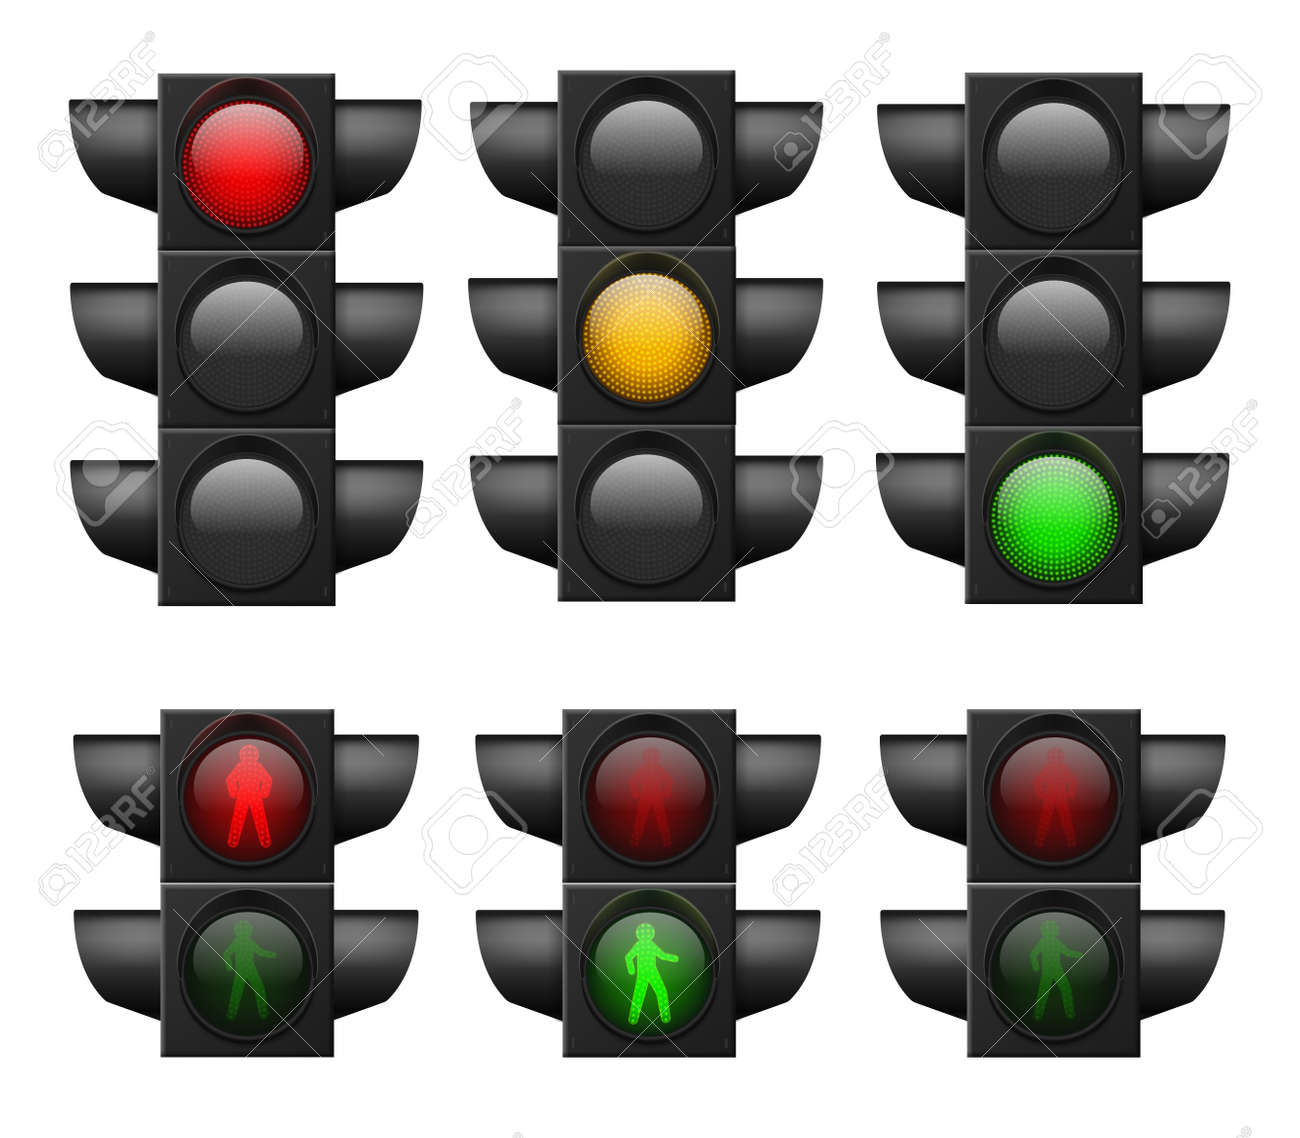 Realistic traffic light. Led lights red, yellow and green, crosswalk and road safety, control accidents, signals street regulation system vector set isolated on white background - 150890903